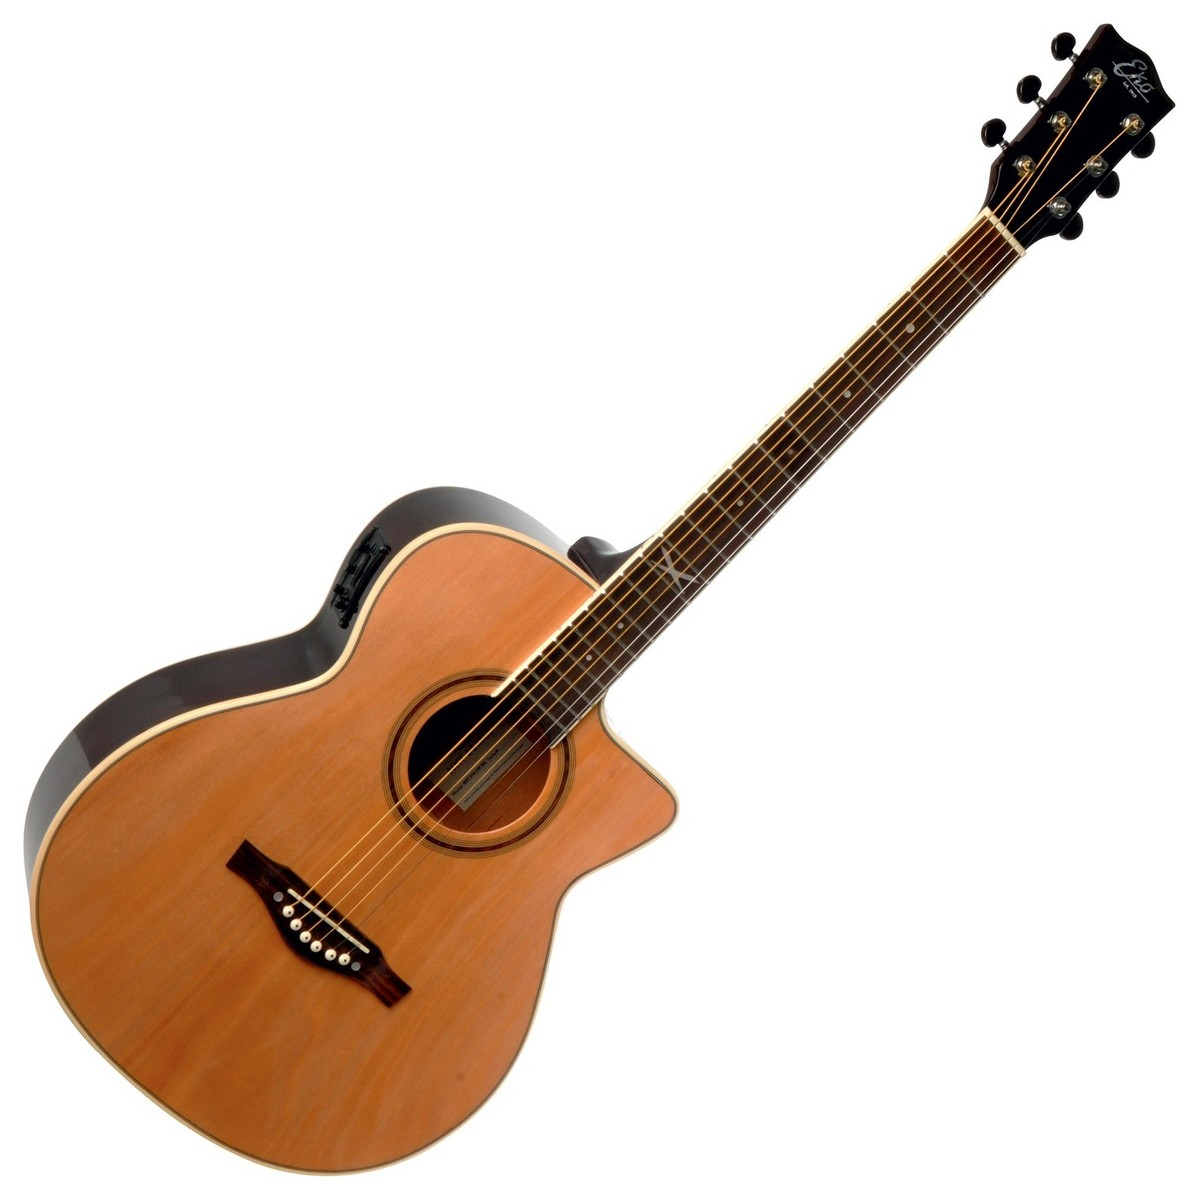 298f83127b Eko NXT 018 CW EQ Electro Acoustic Guitar, Natural at Gear4music